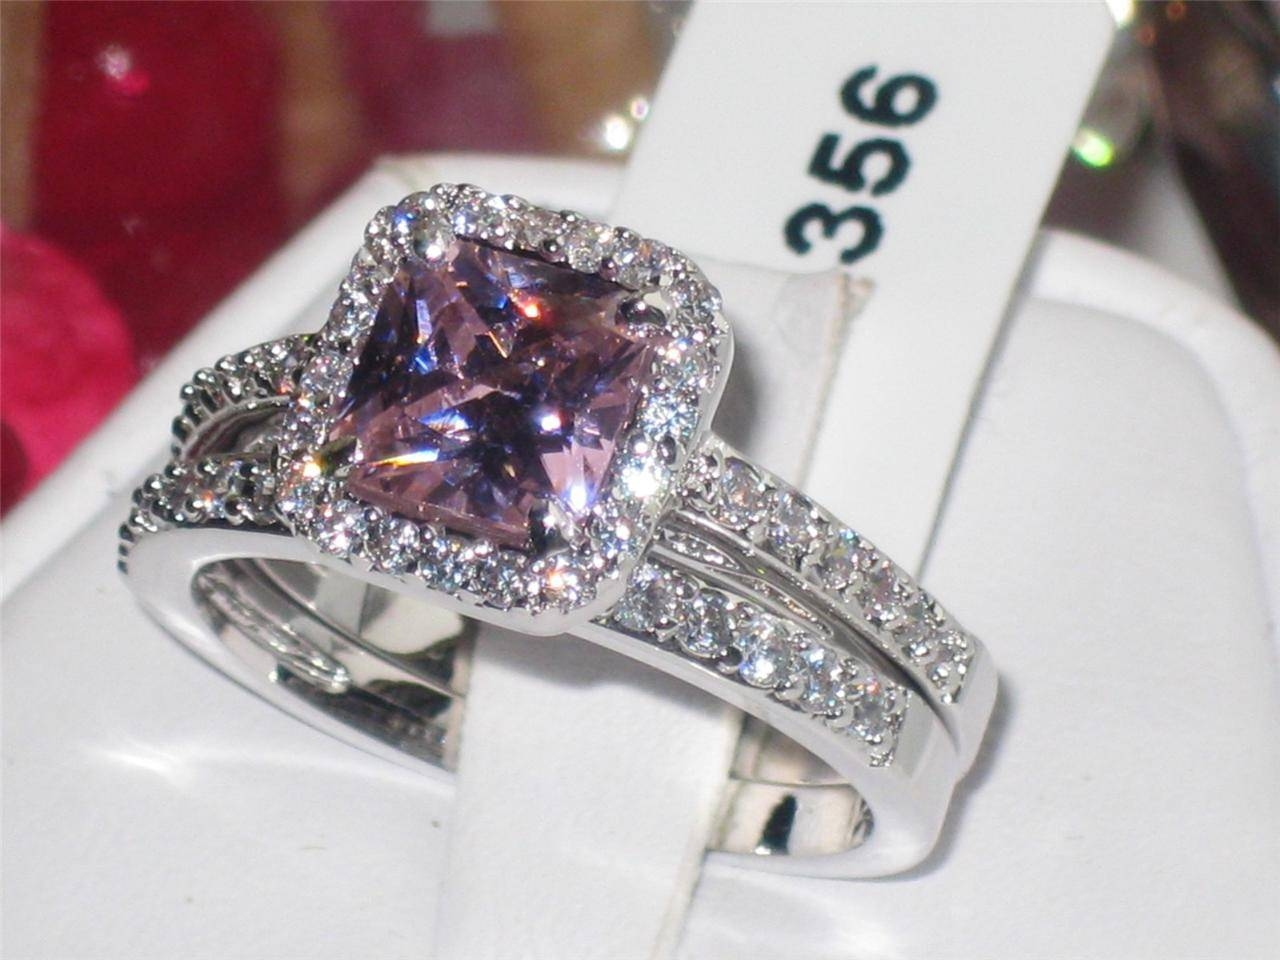 Ideas Of Fake Pink Diamond Rings Diamond And Pink Sapphire Pertaining To Pink Sapphire And Diamond Engagement Rings (View 11 of 15)